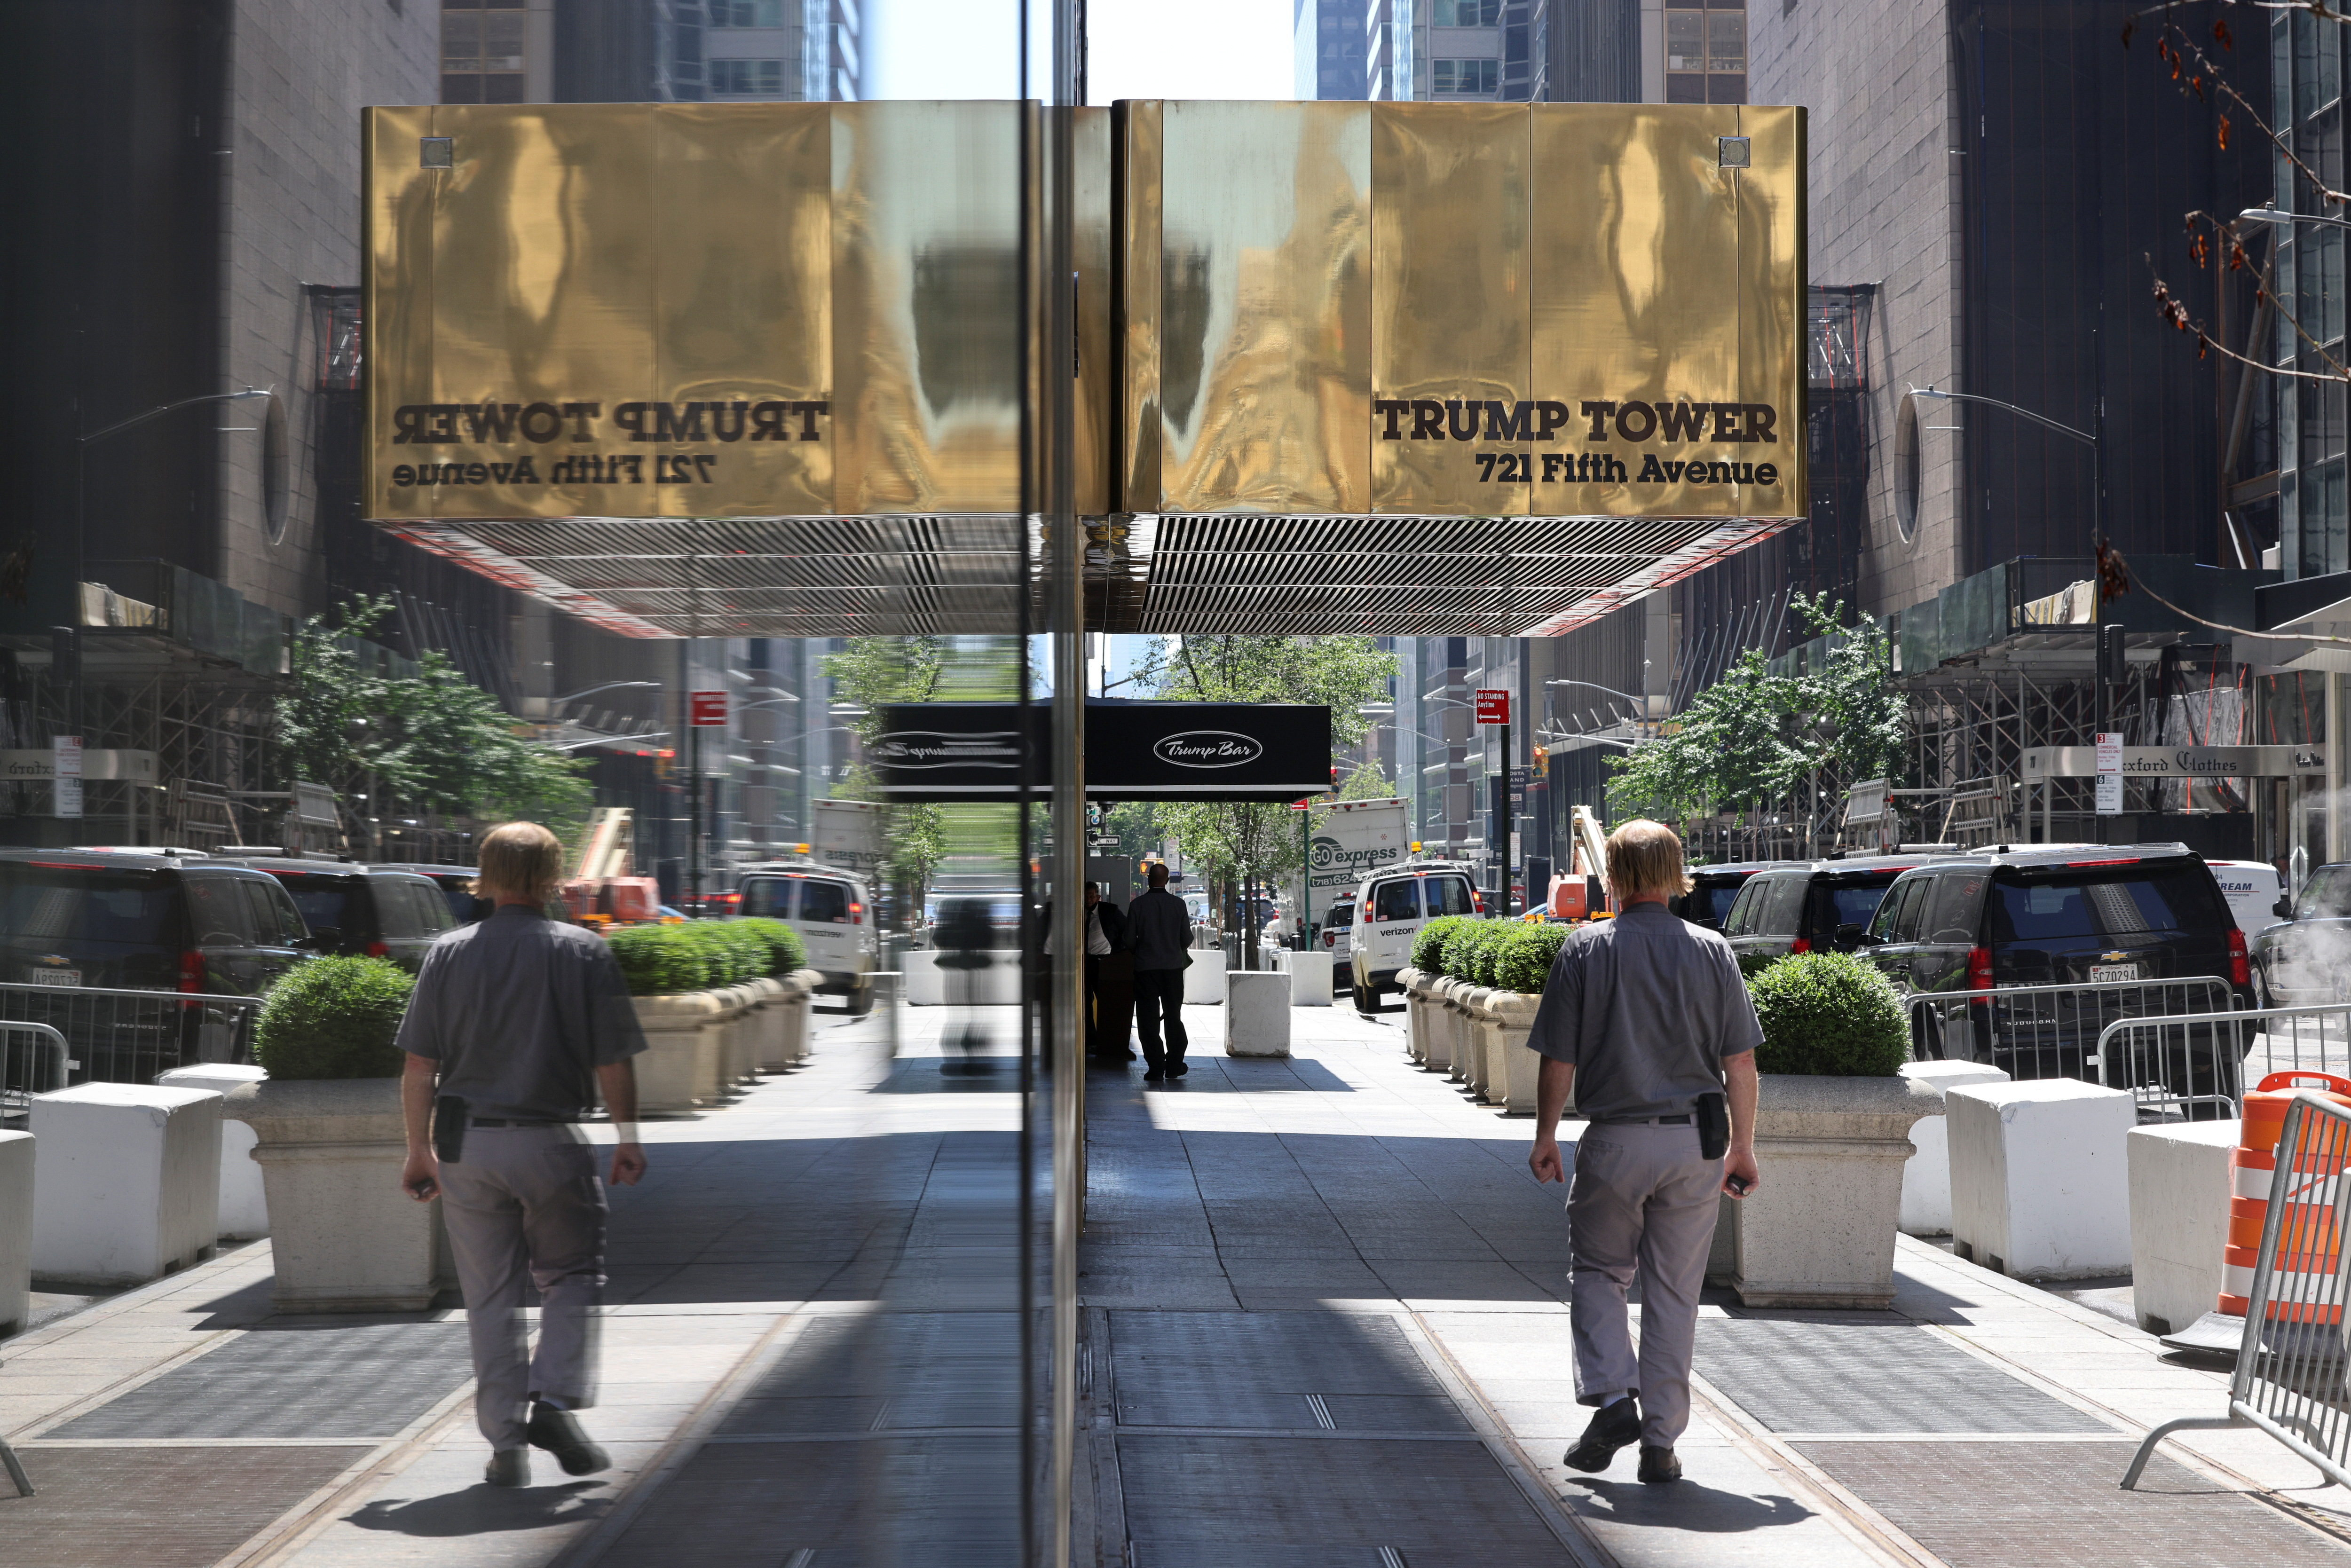 The residential entrance to Trump Tower on 56th Street is pictured in the Manhattan borough of New York City, U.S., June 30, 2021. REUTERS/Angus Mordant